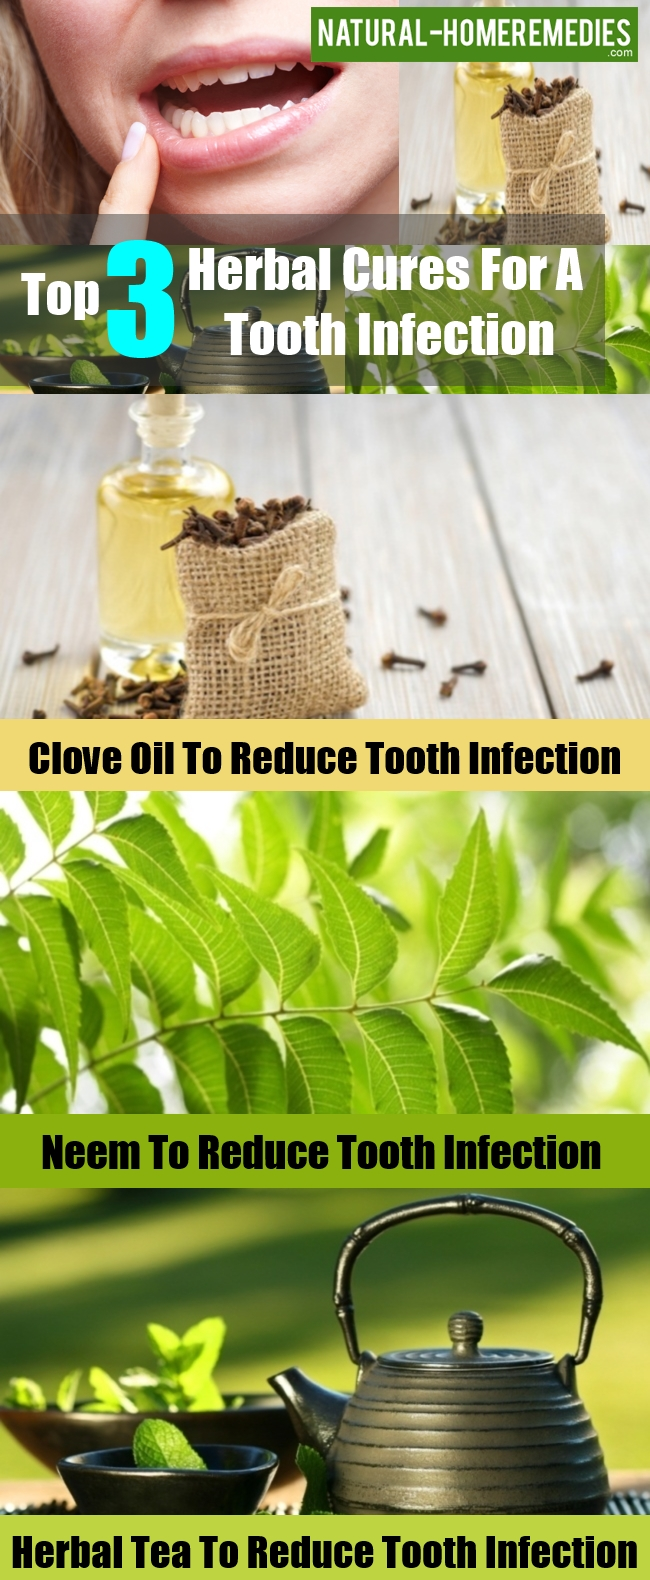 Herbal Cures For A Tooth Infection